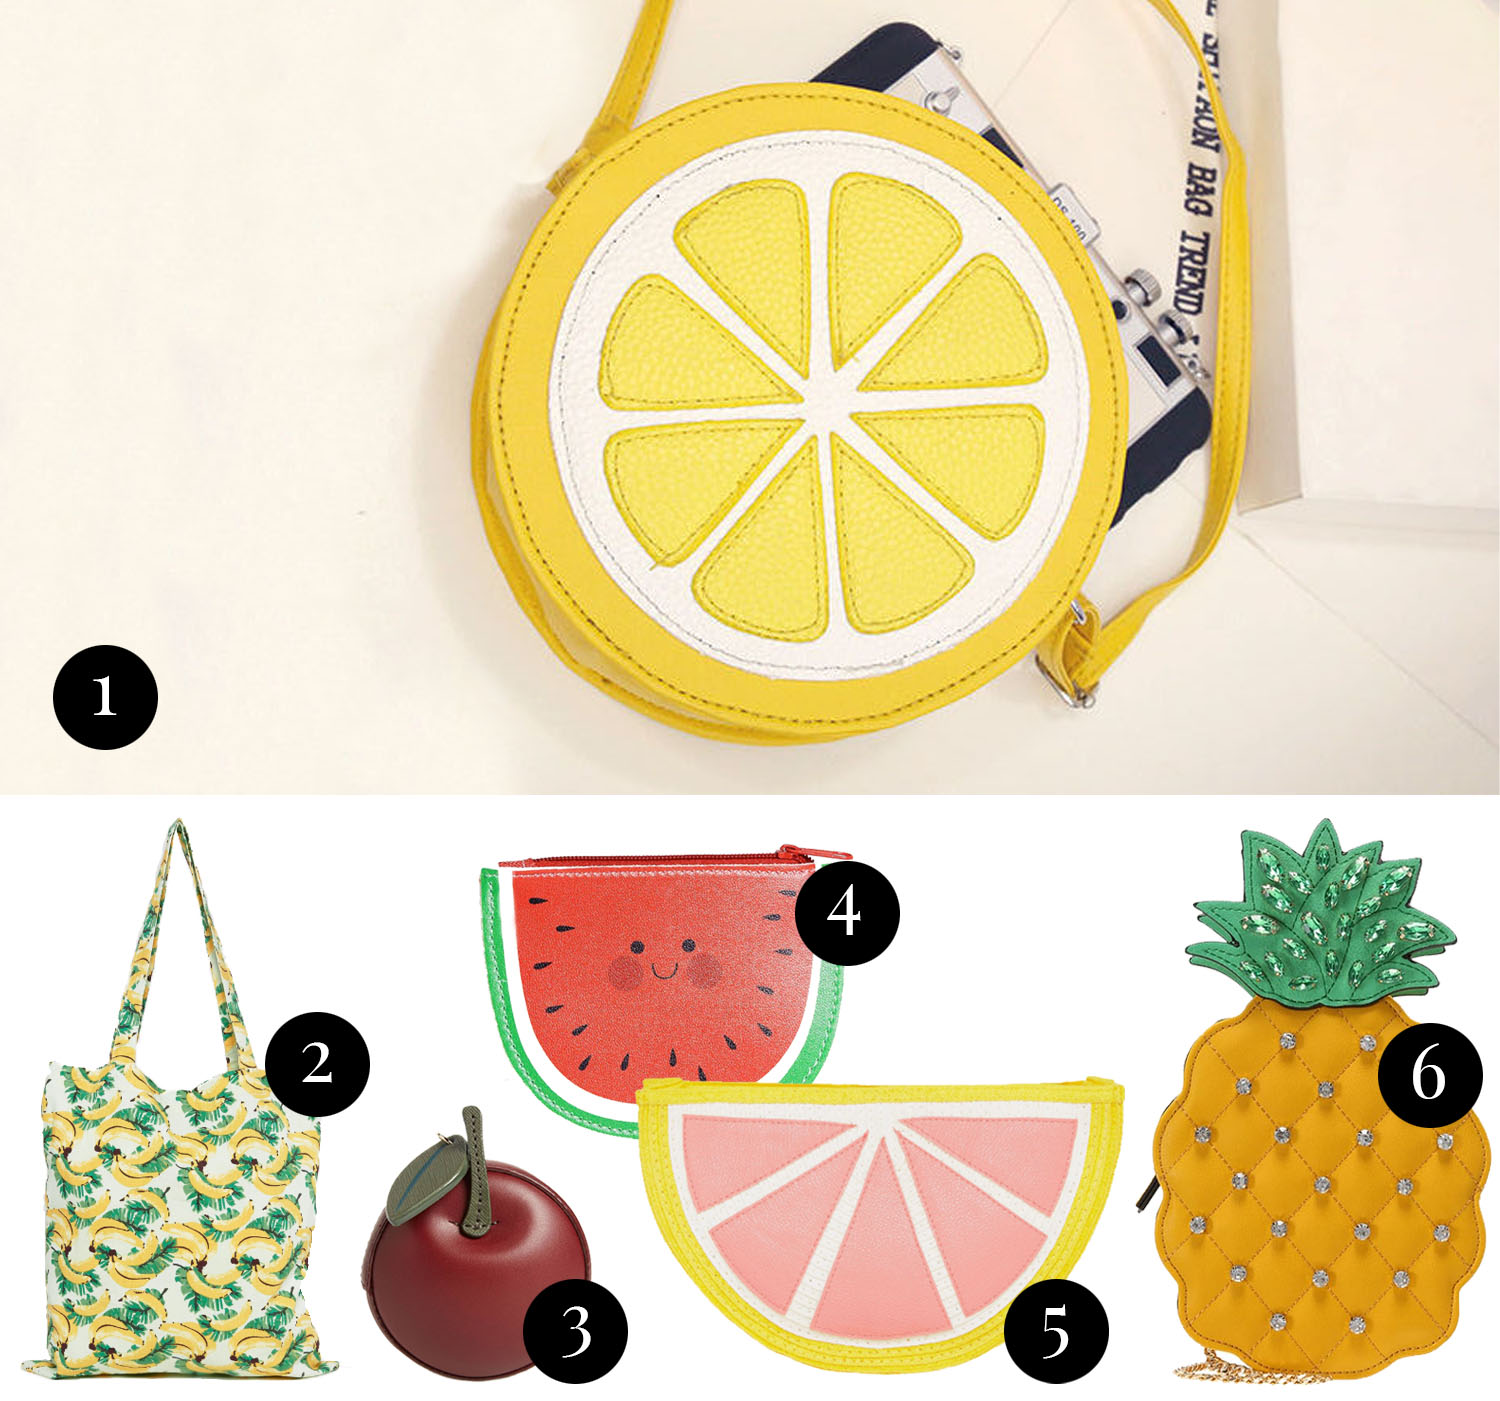 Collage with fruit shaped statement bags